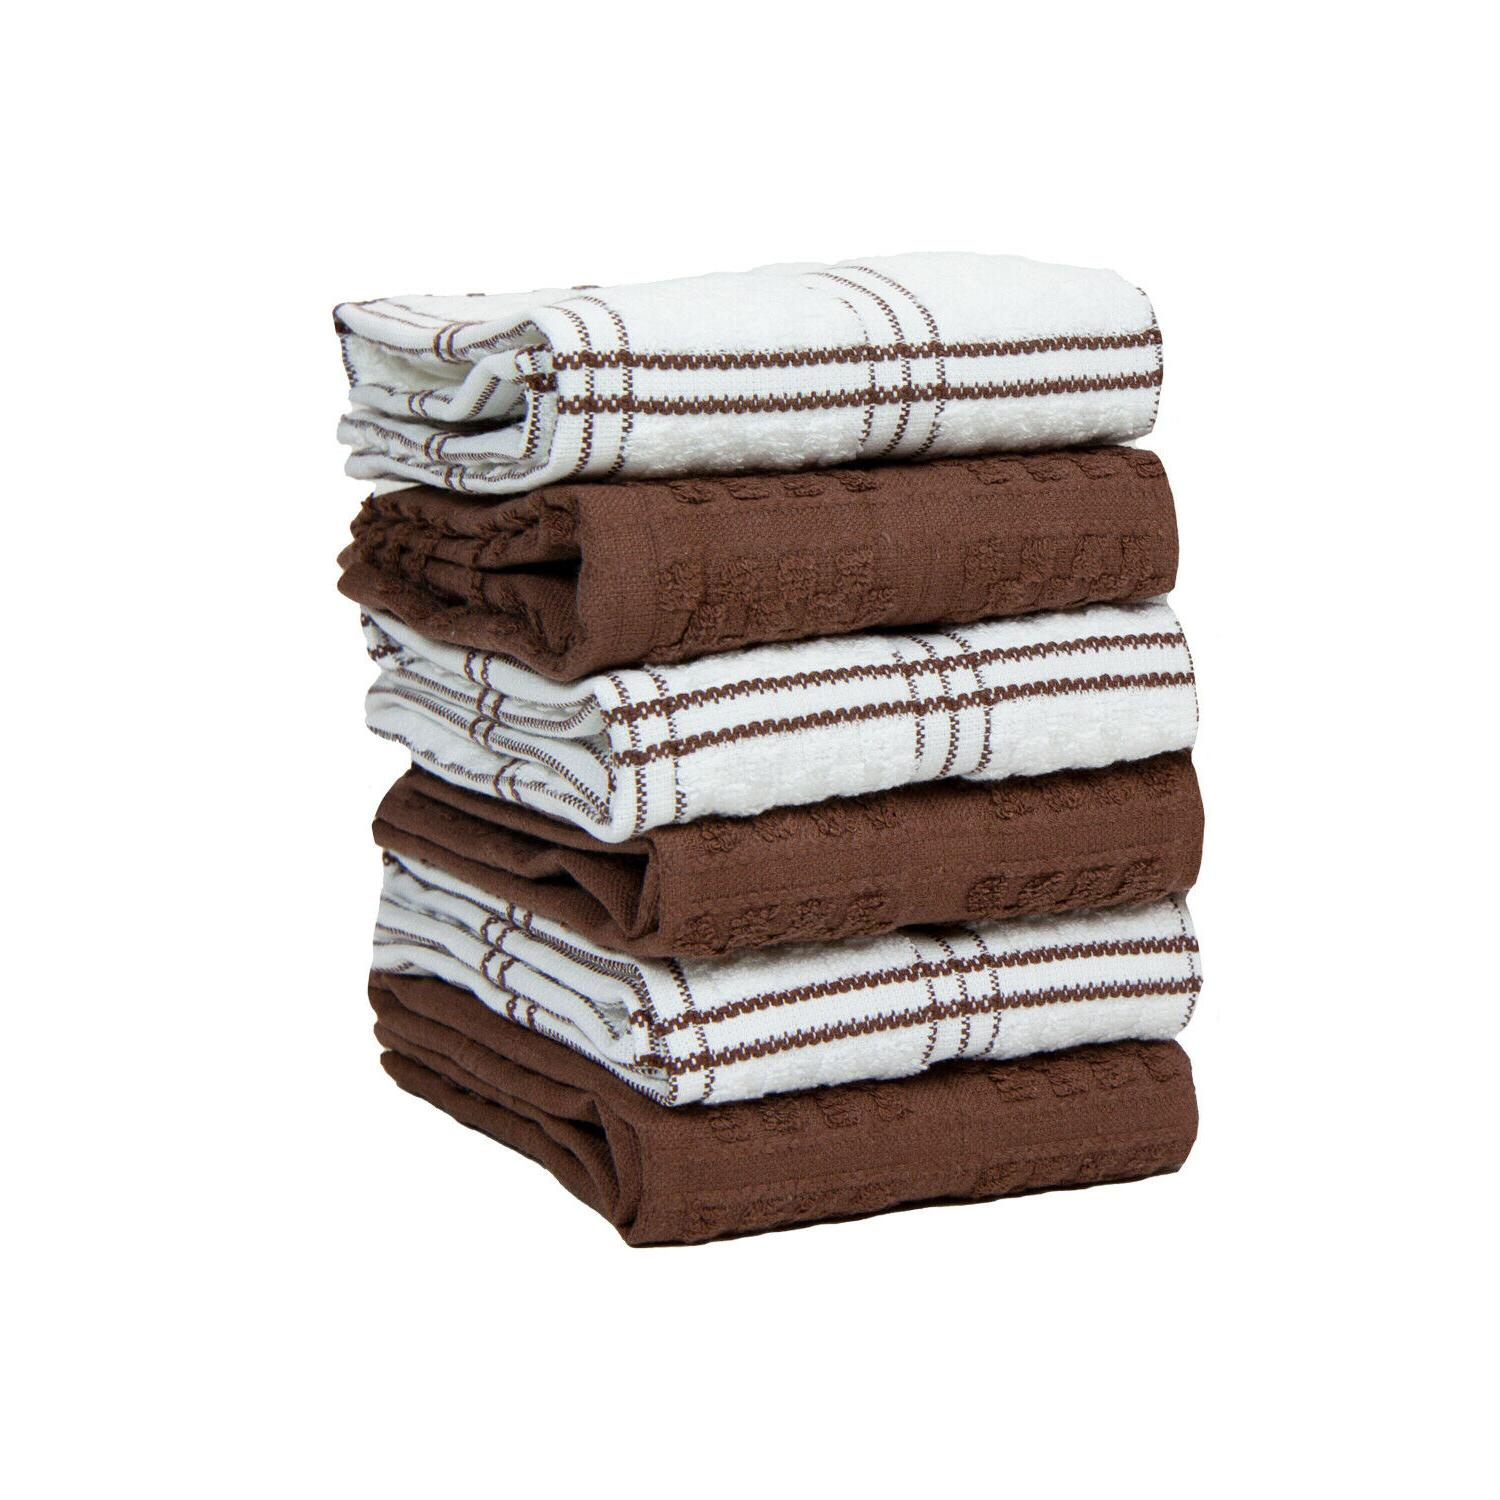 6 Pack of Kitchen Tea Towels - Striped Popcorn - x in Cotton